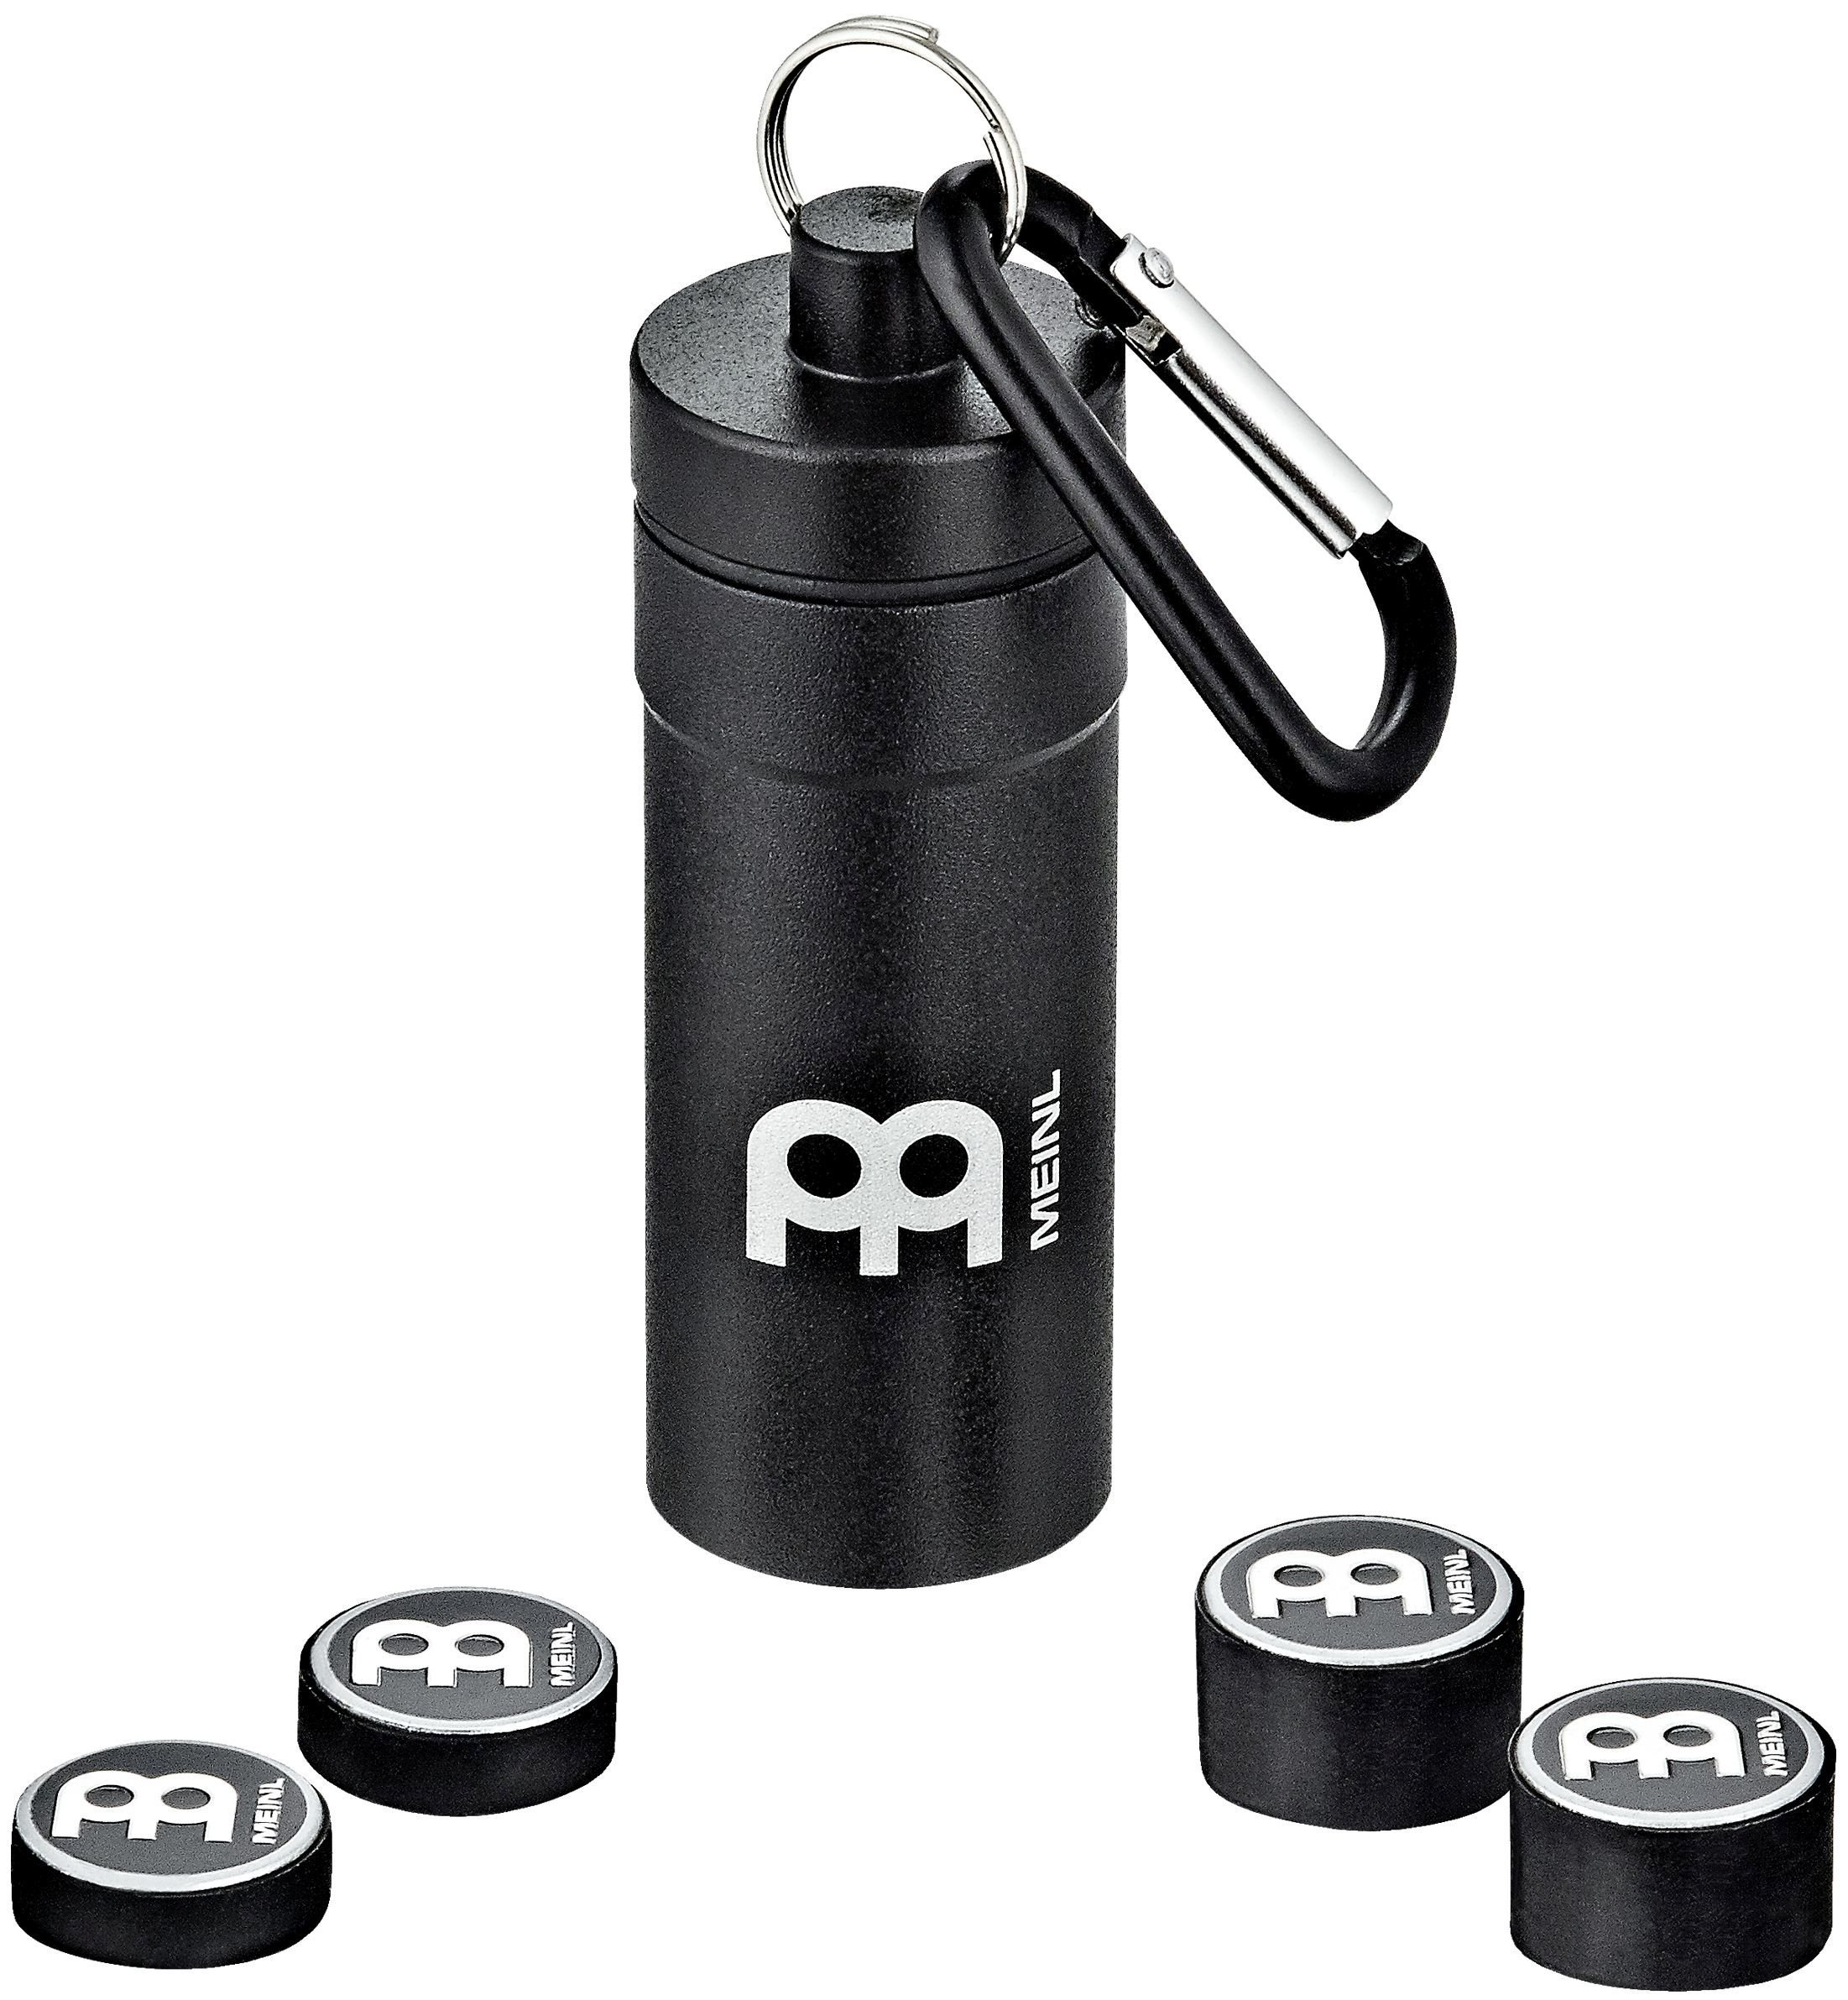 Meinl Cymbals MCT Magnetic Tuners for Dampening Effects, Pack of 4 Magnets with Different Strength